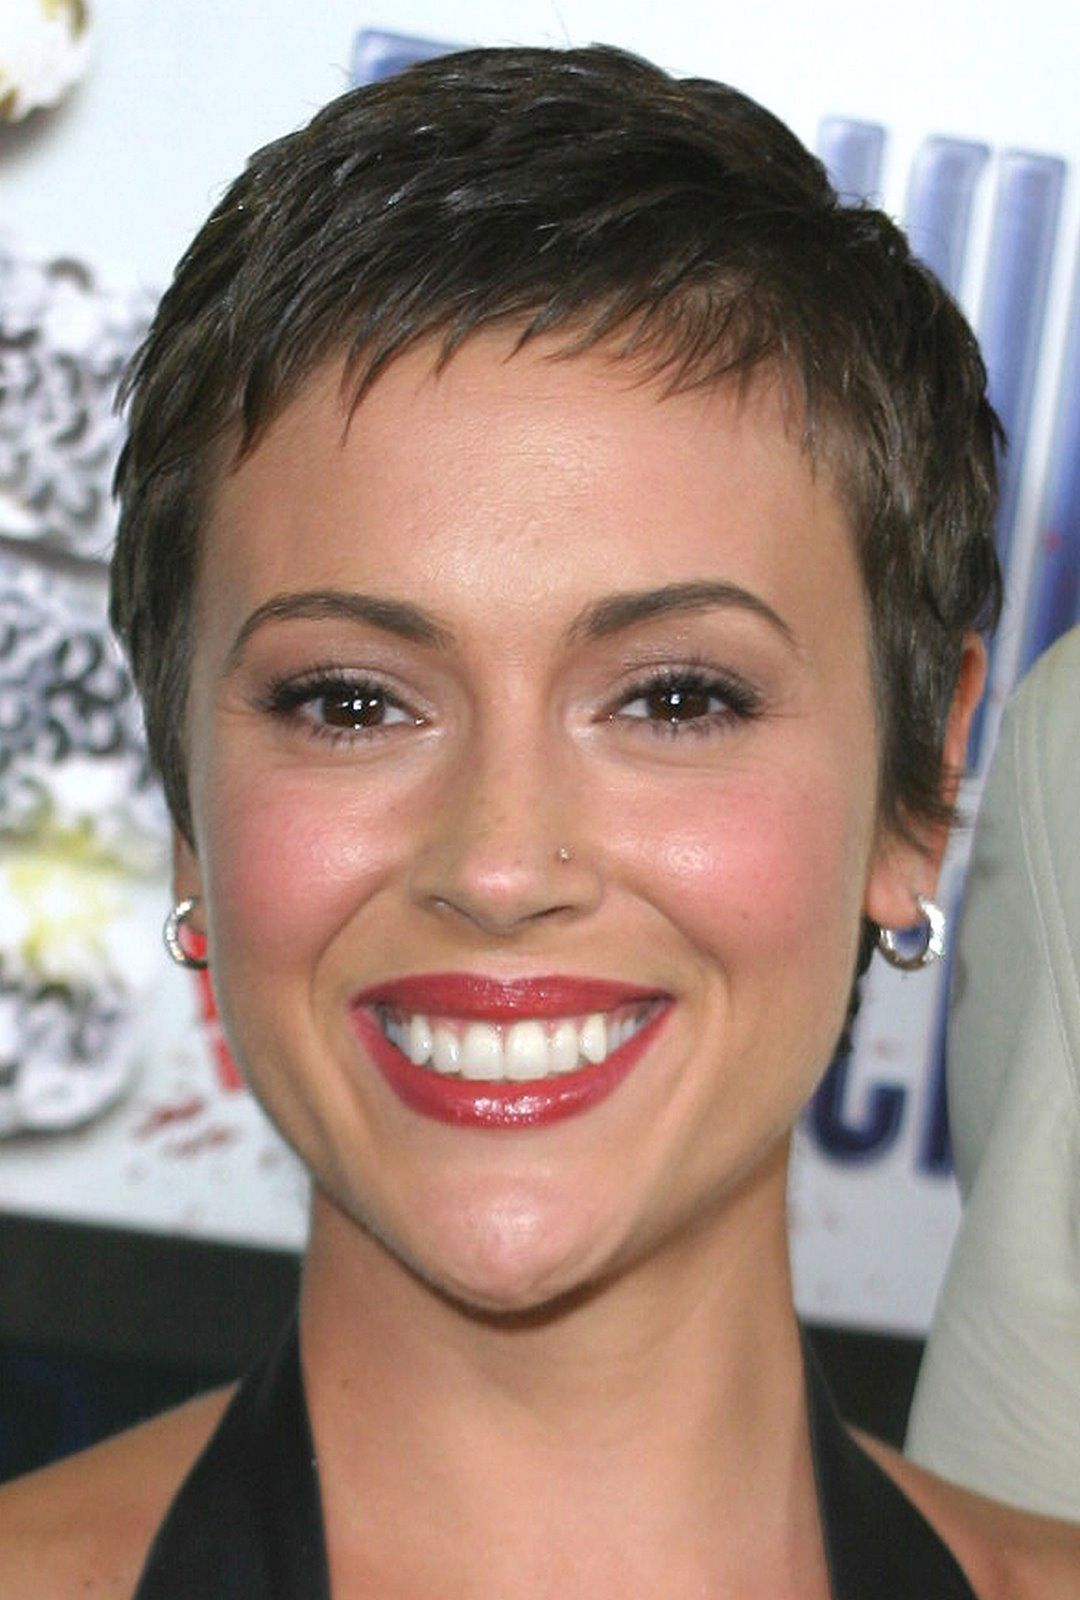 Hairstyles for men and women women short hairstyle pictures